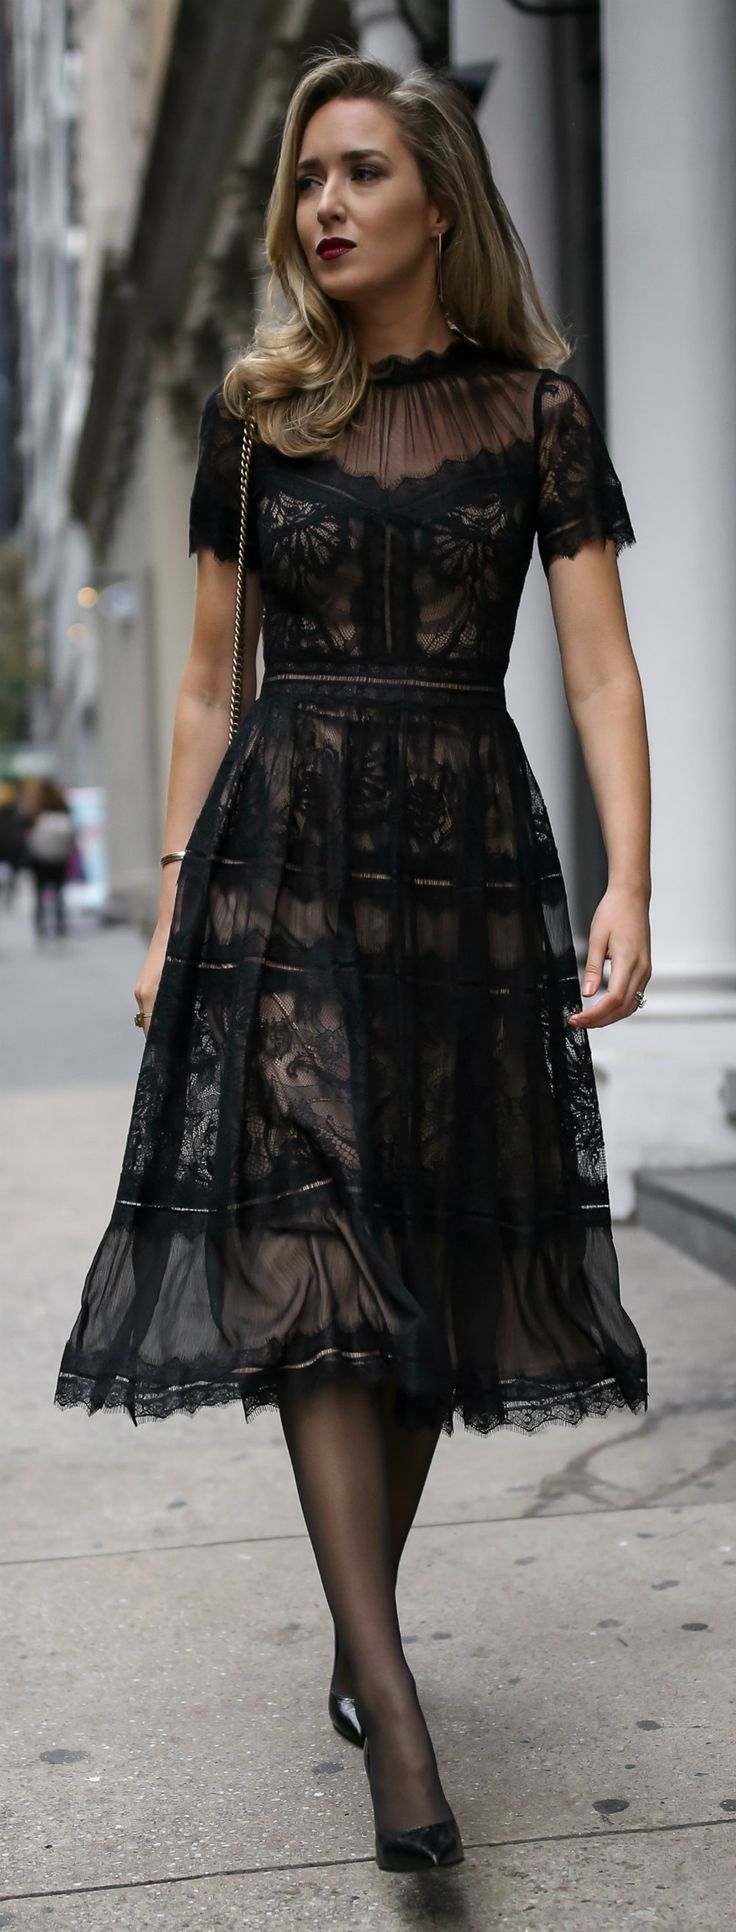 Black pleated a-line tea-length lace dress with scallop hem, pointy toe black patent pump, black sheer tights, black shoulder bag with gold chain, deep red lip {Saint Laurent, Gucci, Tadashi Shoji, cocktail attire, semi-formal dress, winter wedding style, classic dress, fashion blogger}